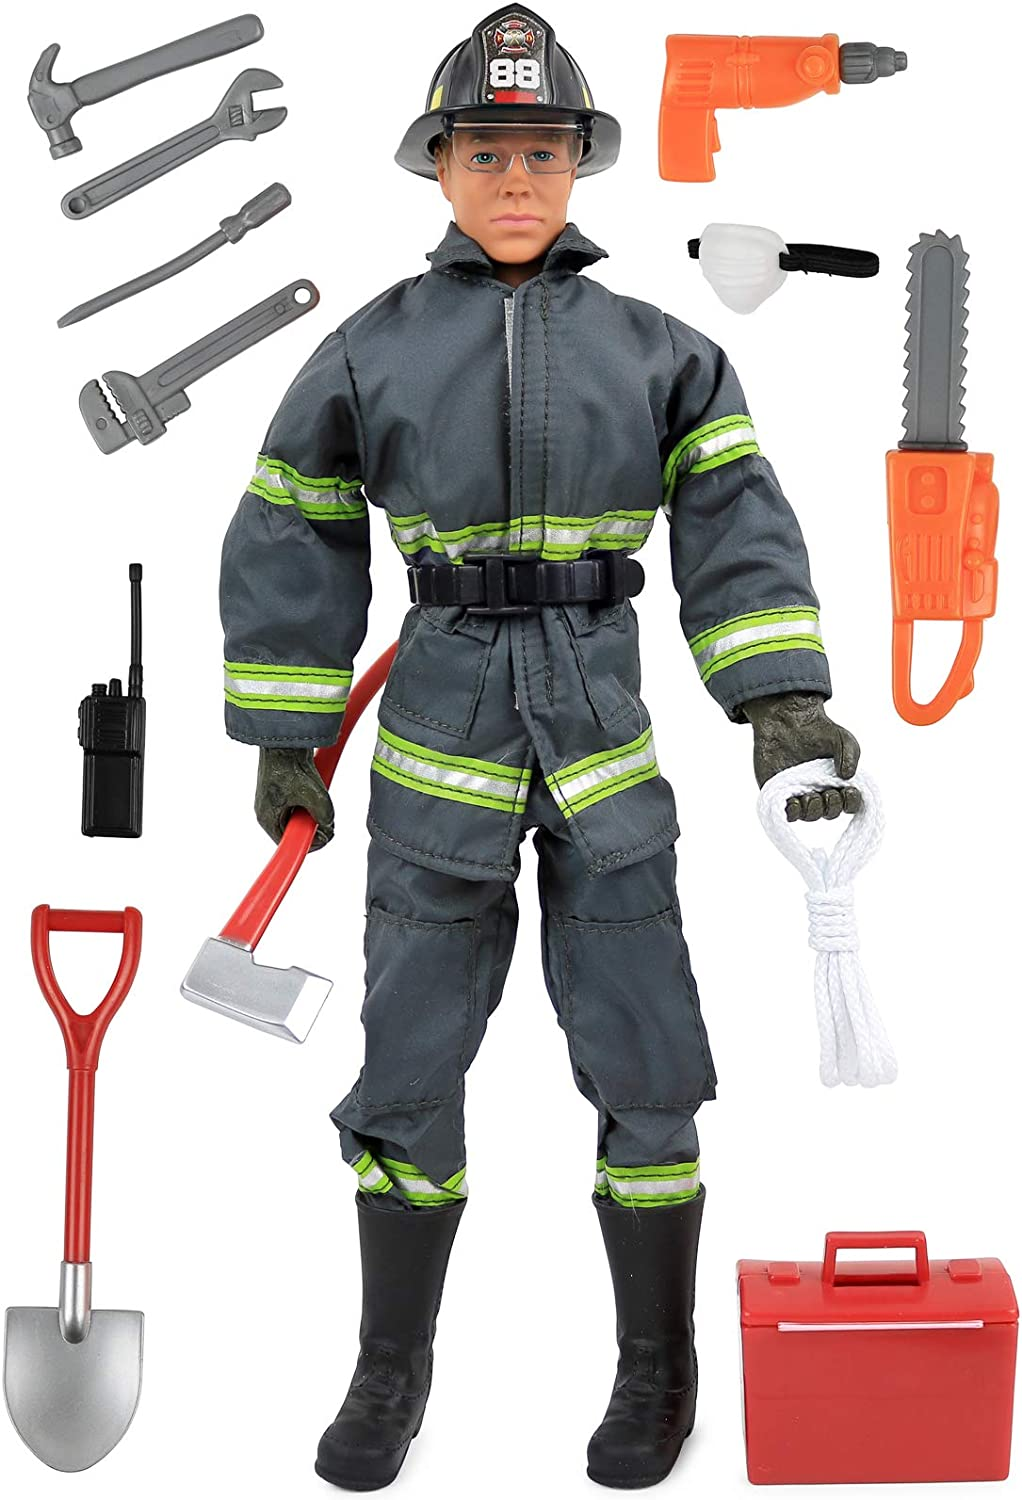 Click N' Play CNP30633 Search & Rescue Firefighter 12   Action Figure Play Set with Accessories, 12 inches, Brown A